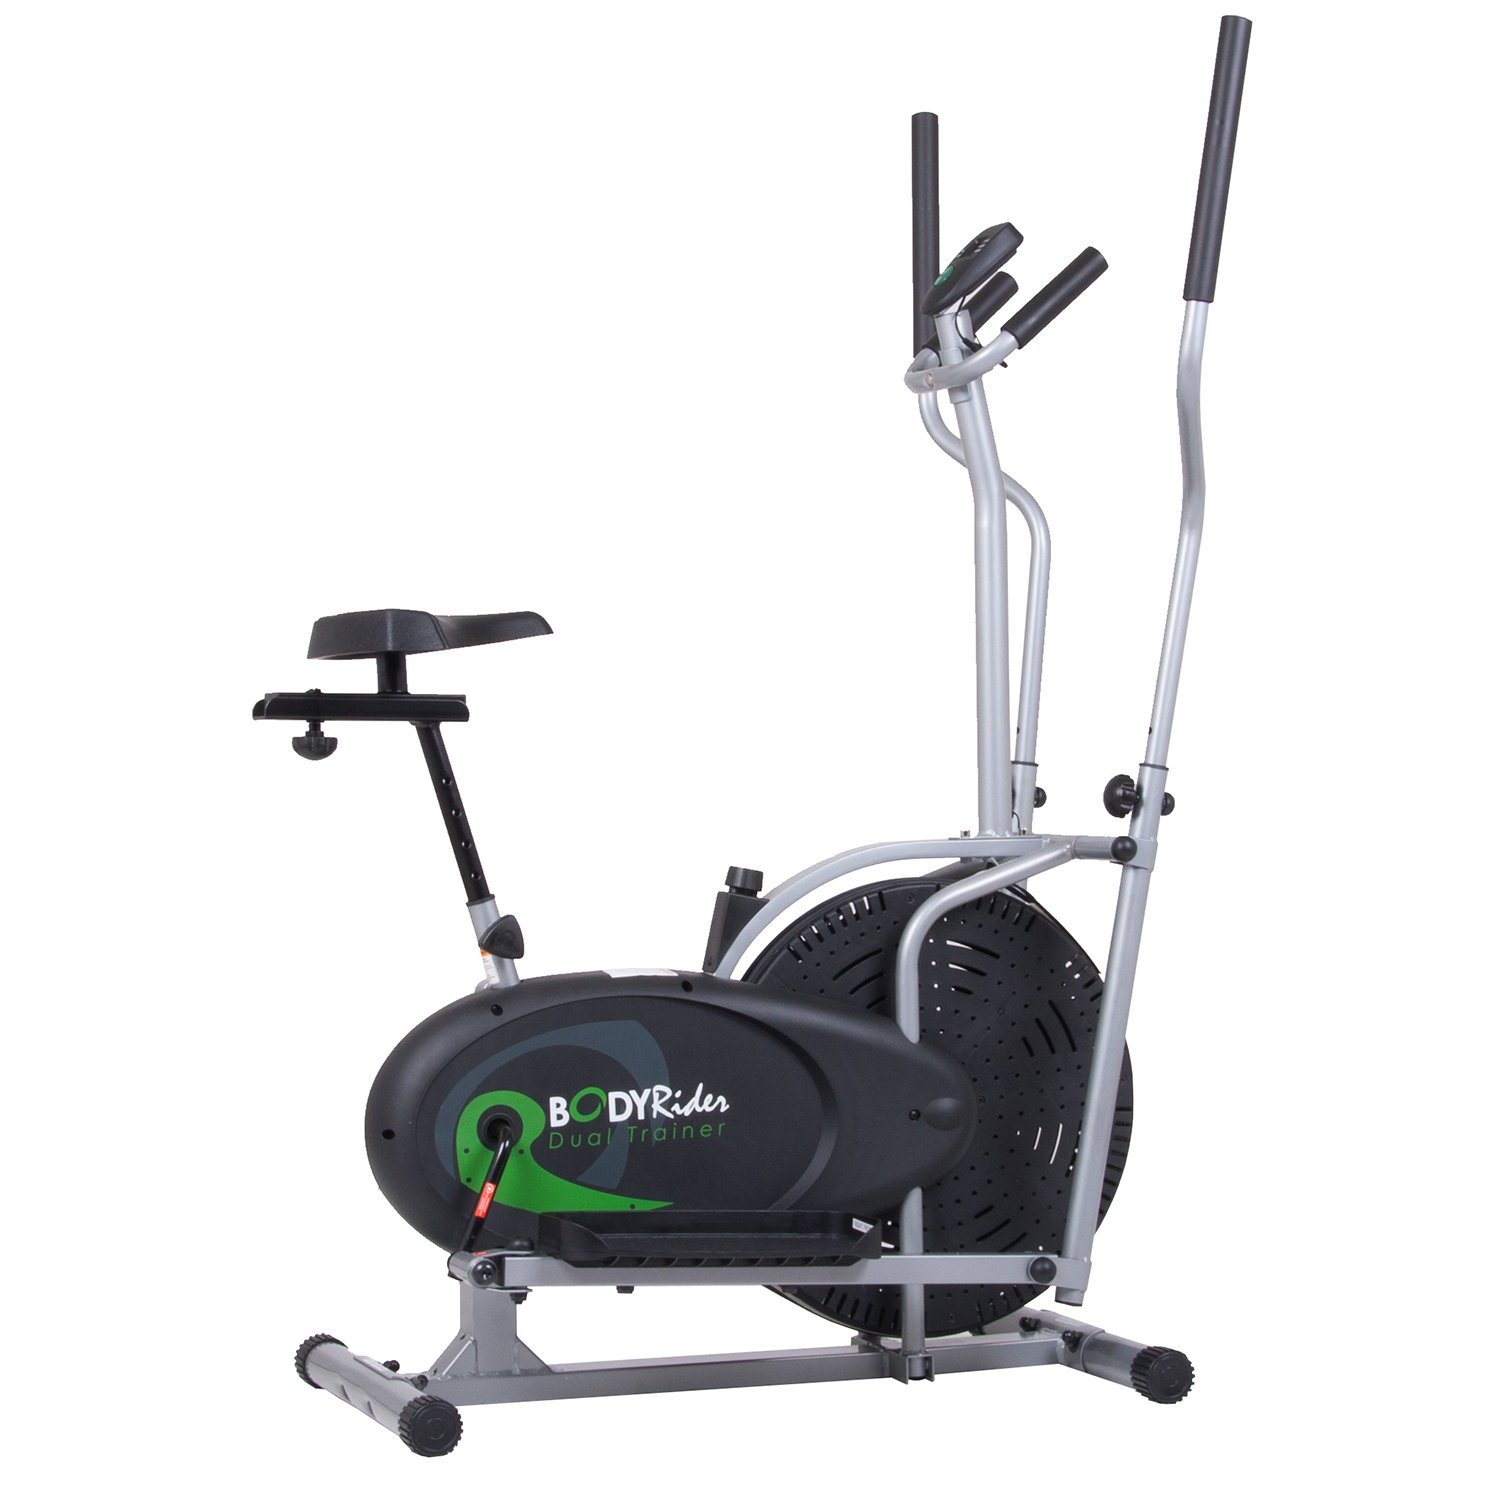 Body Rider Elliptical Trainer and Exercise Bike with Seat and Easy Computer / Dual Trainer 2 in 1 Cardio Home Office Fitness Workout Machine BRD2000 by Body Max